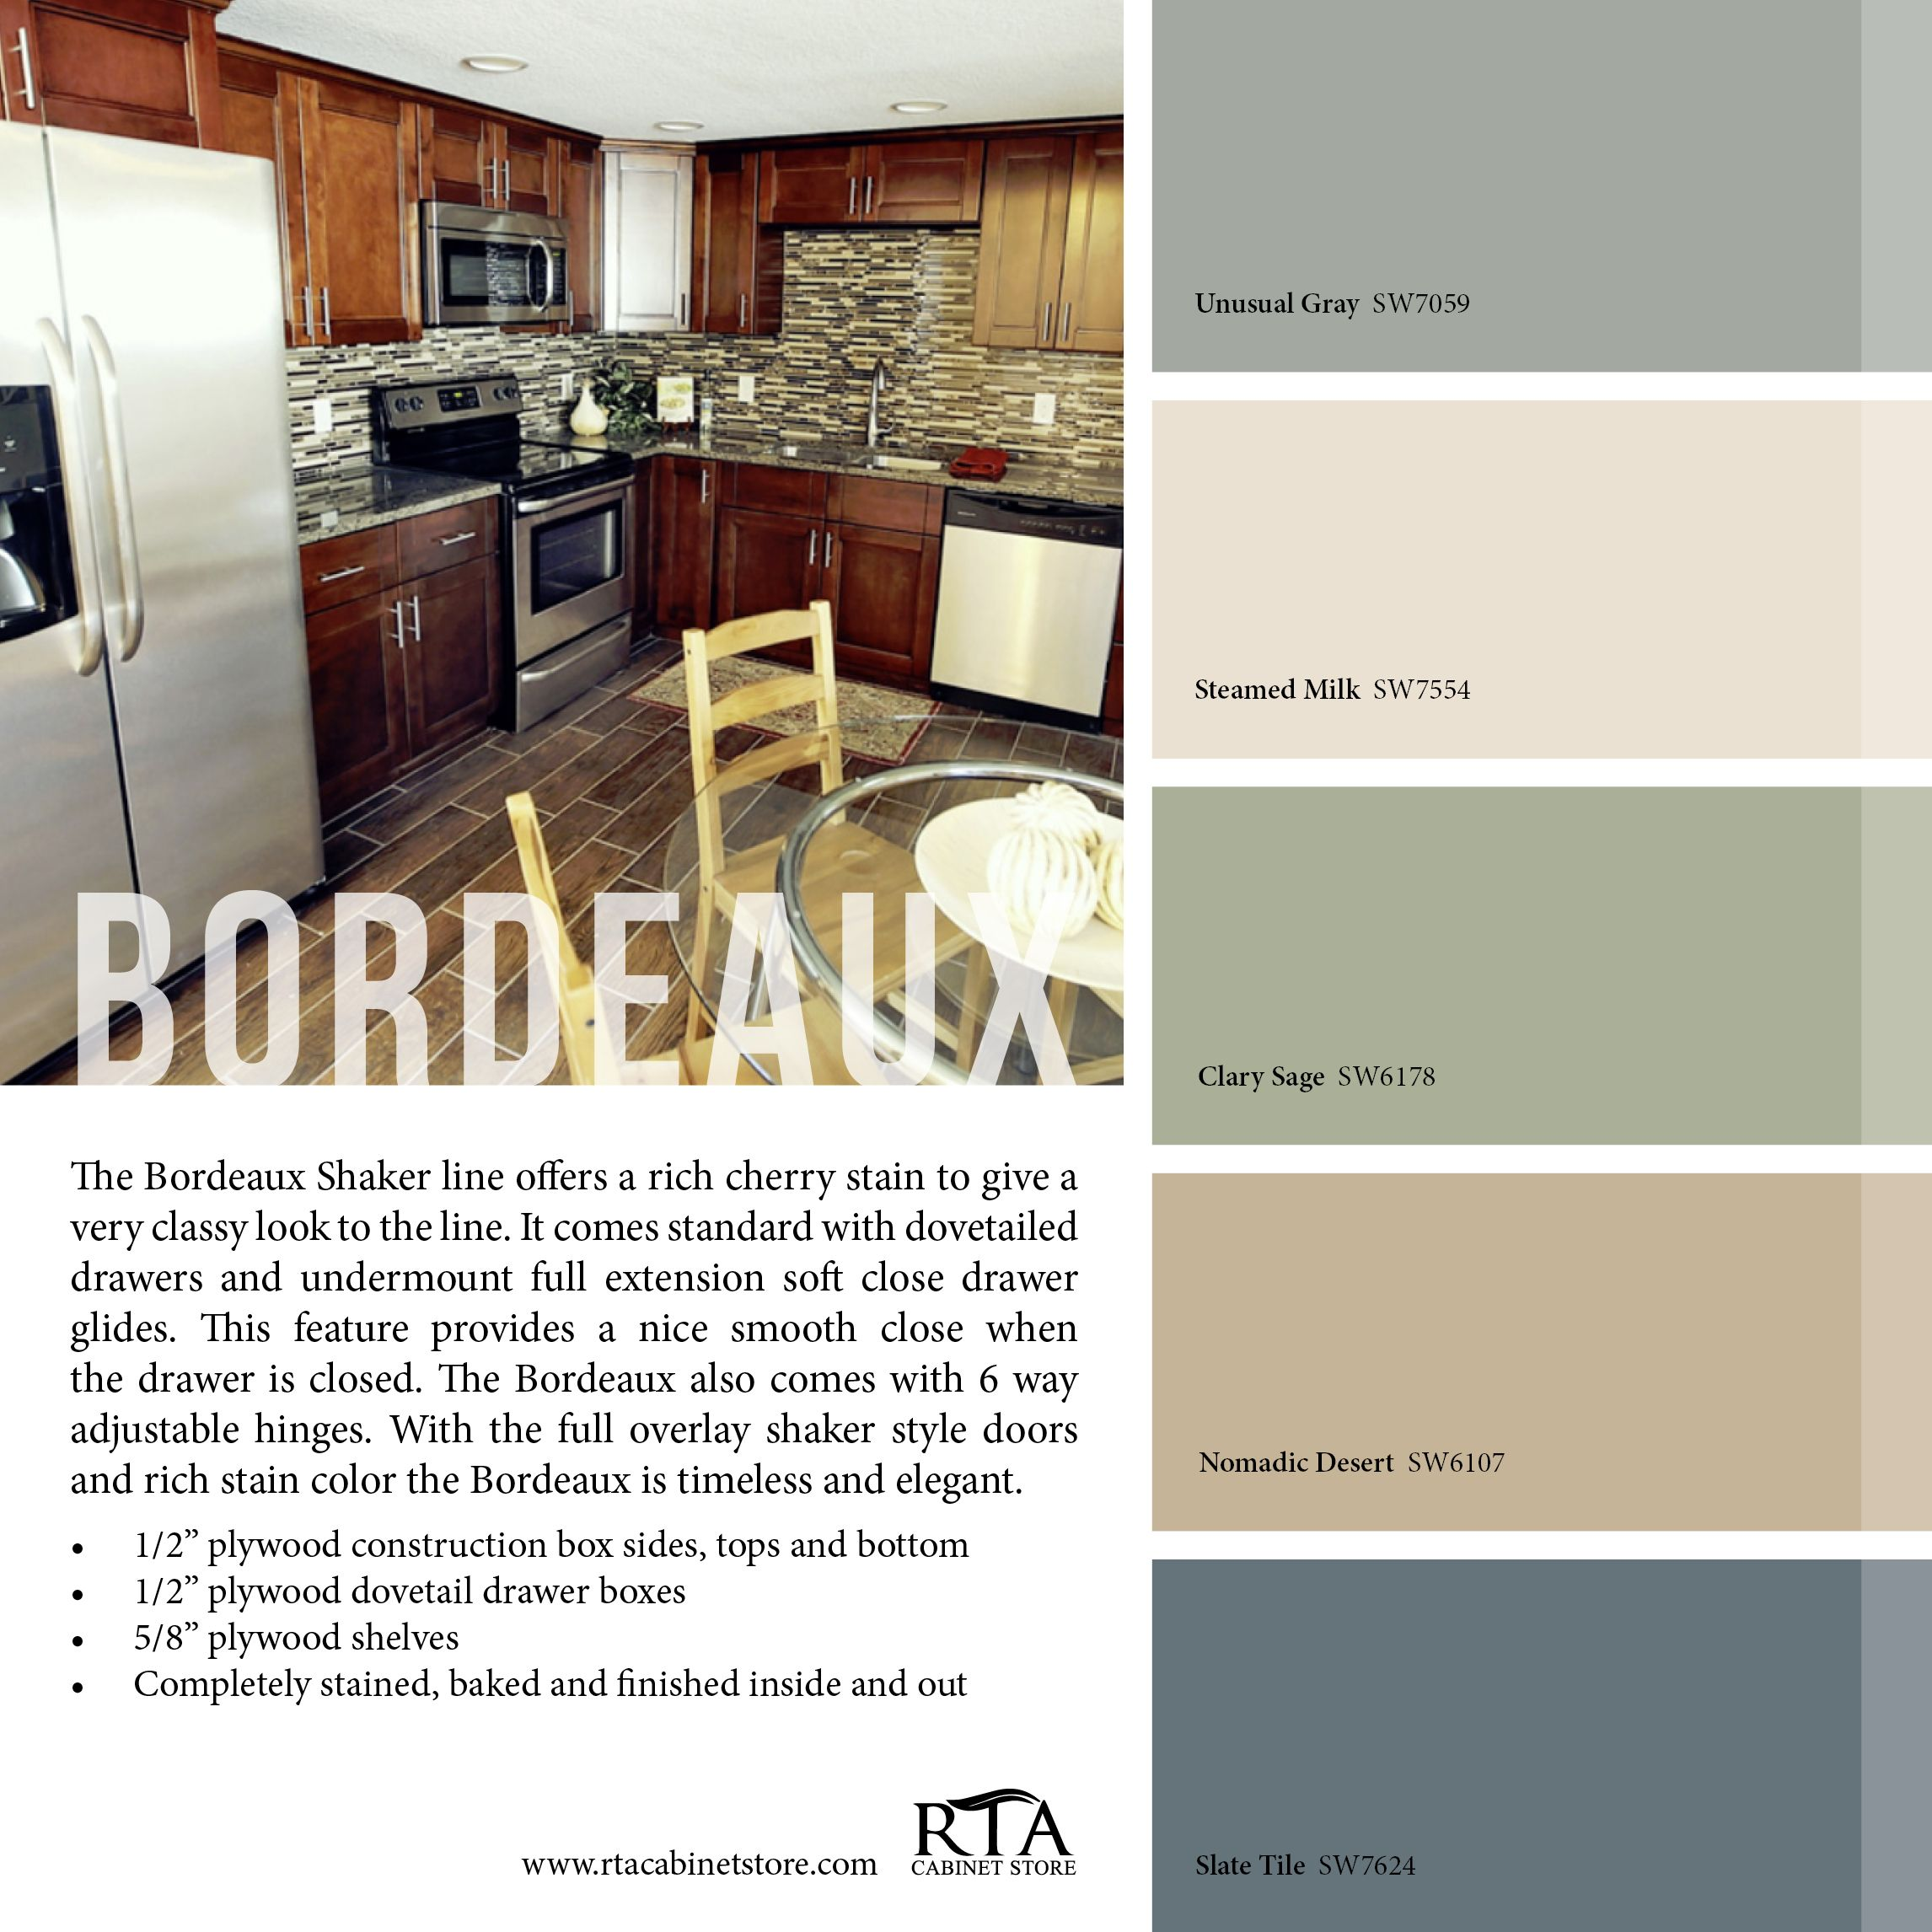 Color Palette To Go With Our Bordeaux Kitchen Cabinet Line Kitchen Paint Colors With Cherry Cherry Cabinets Kitchen Paint Colors